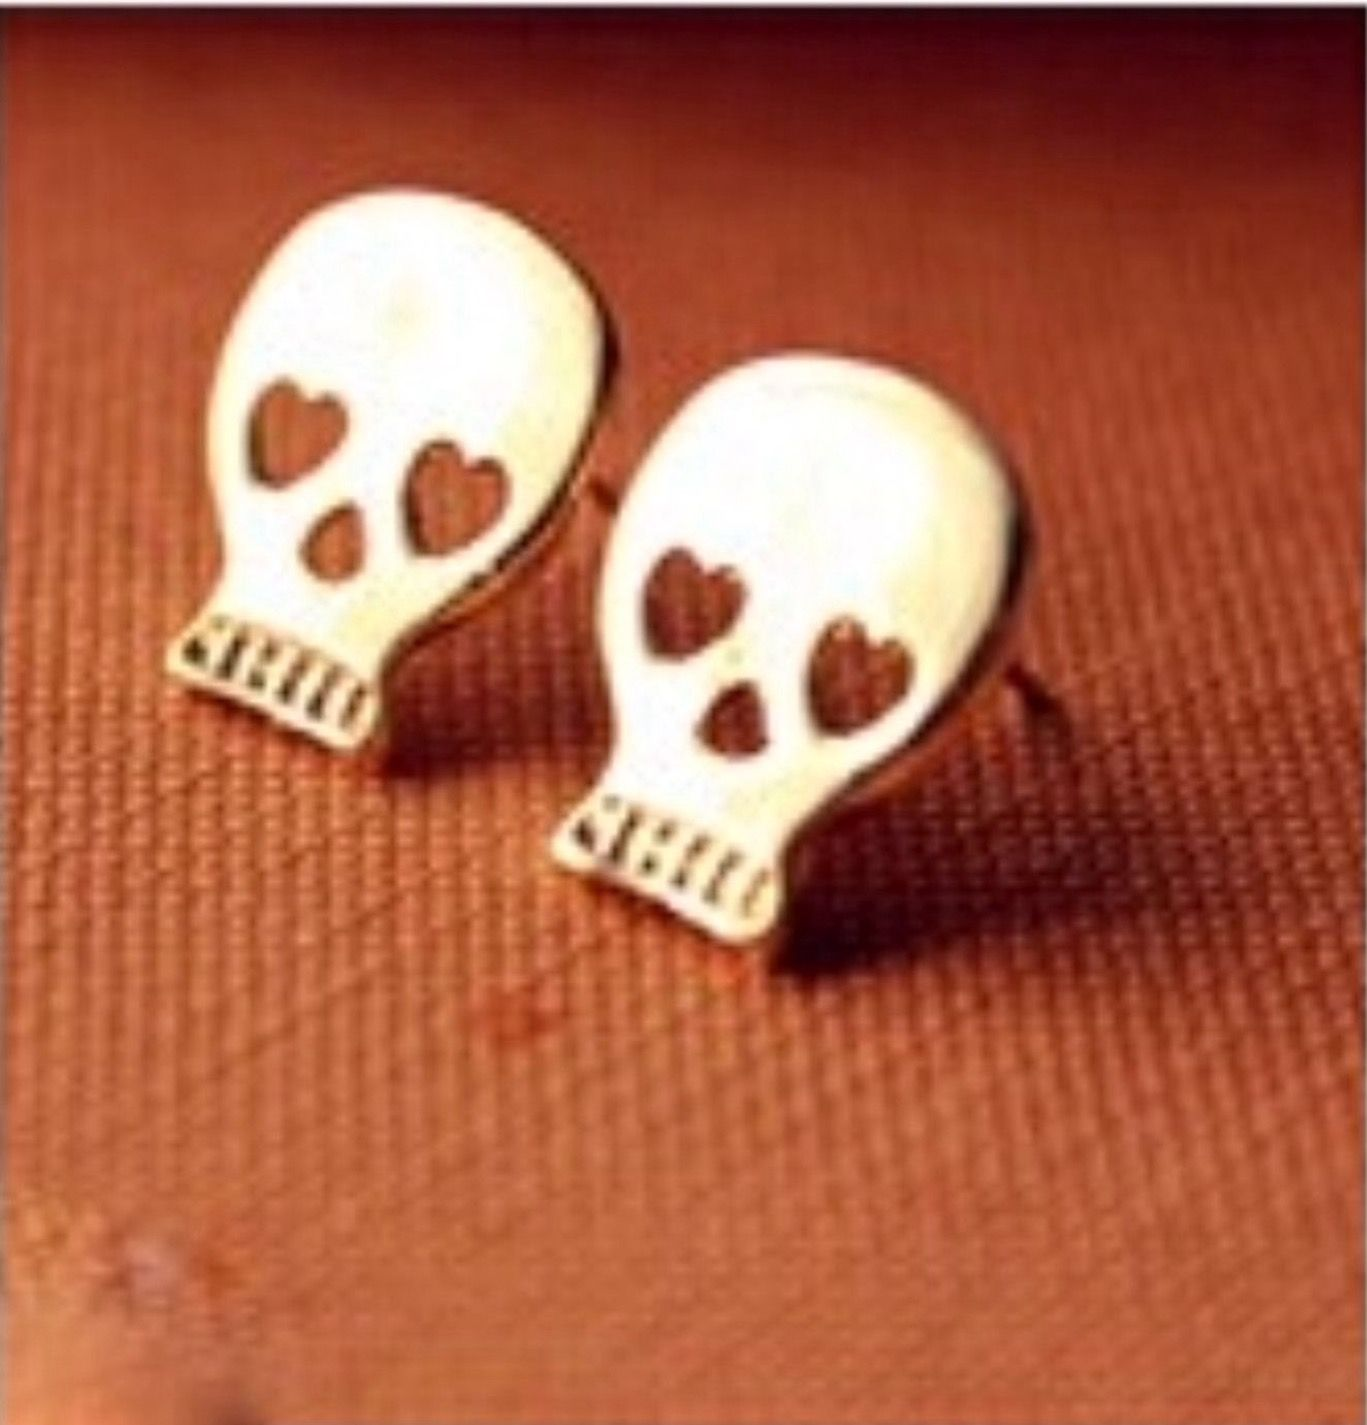 Skull Studs Gold Plated Earrings Price Is Firm On Single Item S